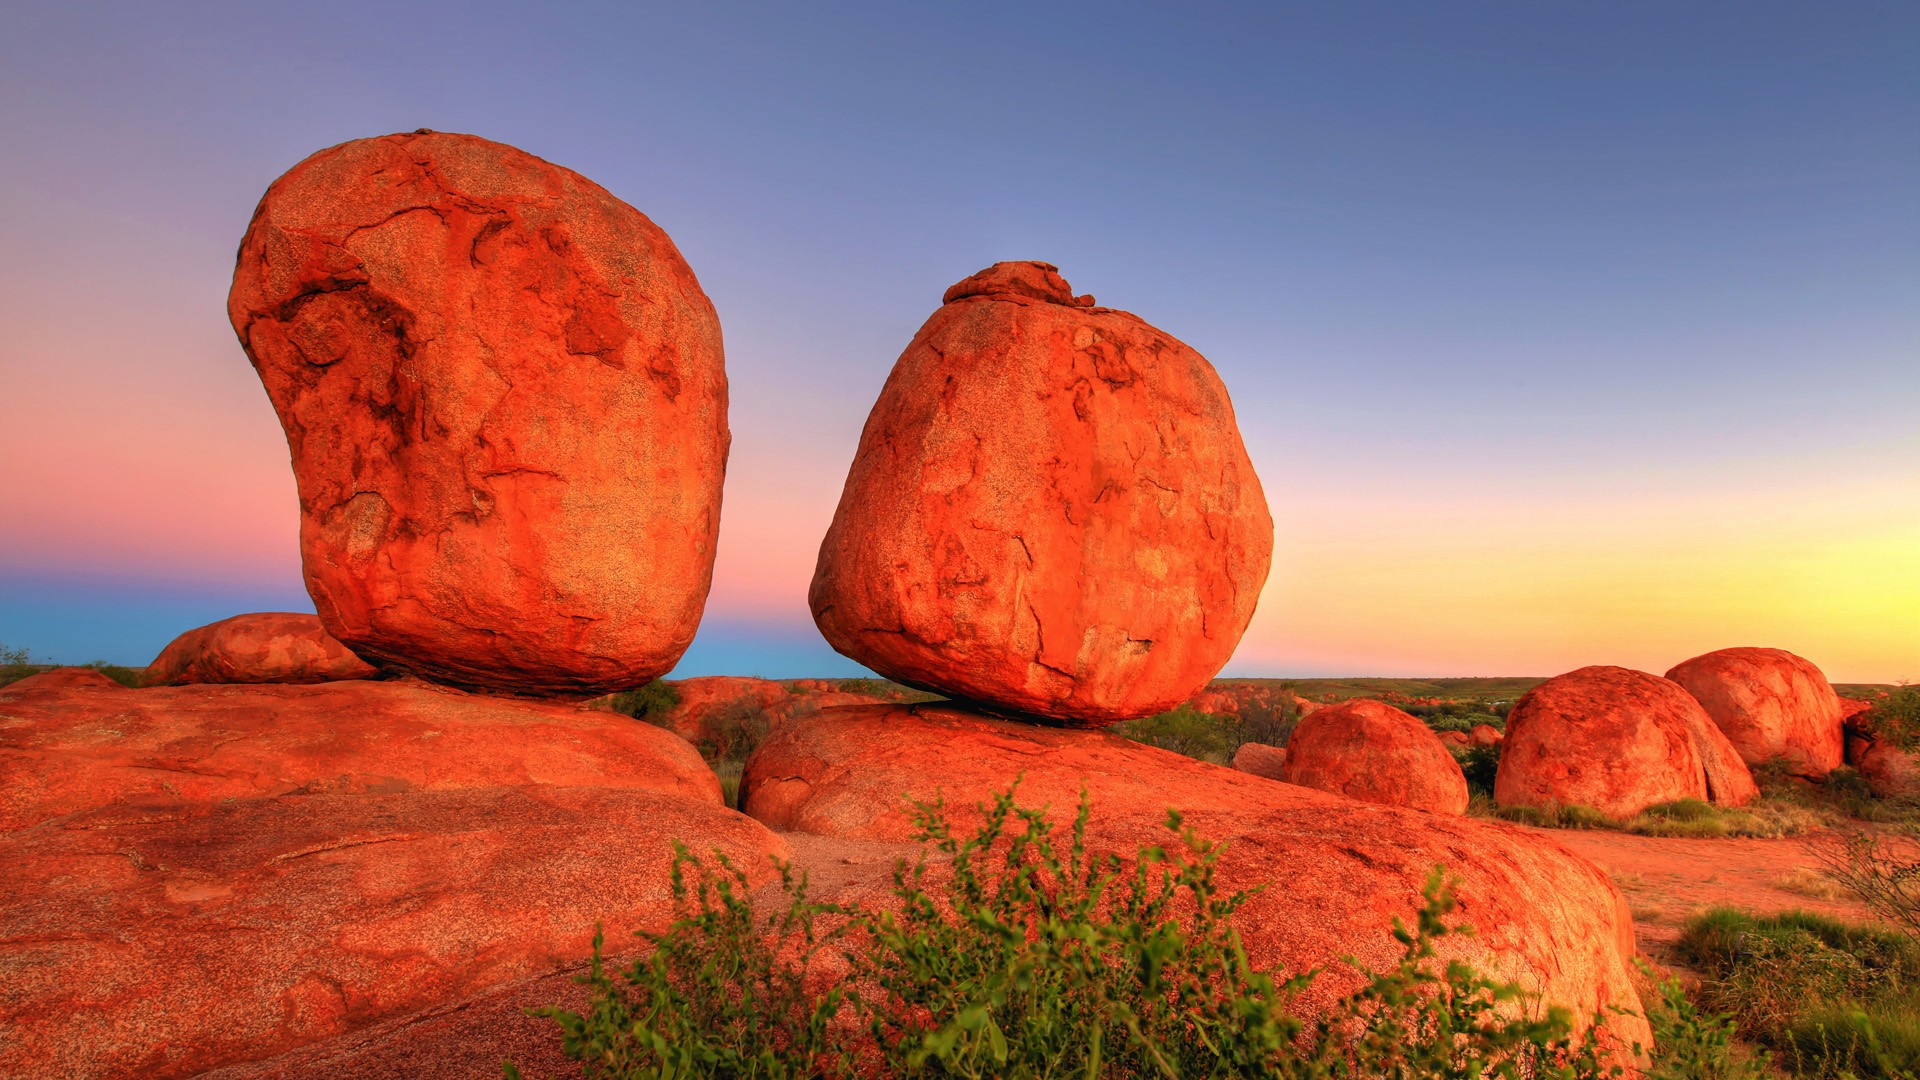 Devils Marbles Backgrounds, Compatible - PC, Mobile, Gadgets| 1920x1080 px